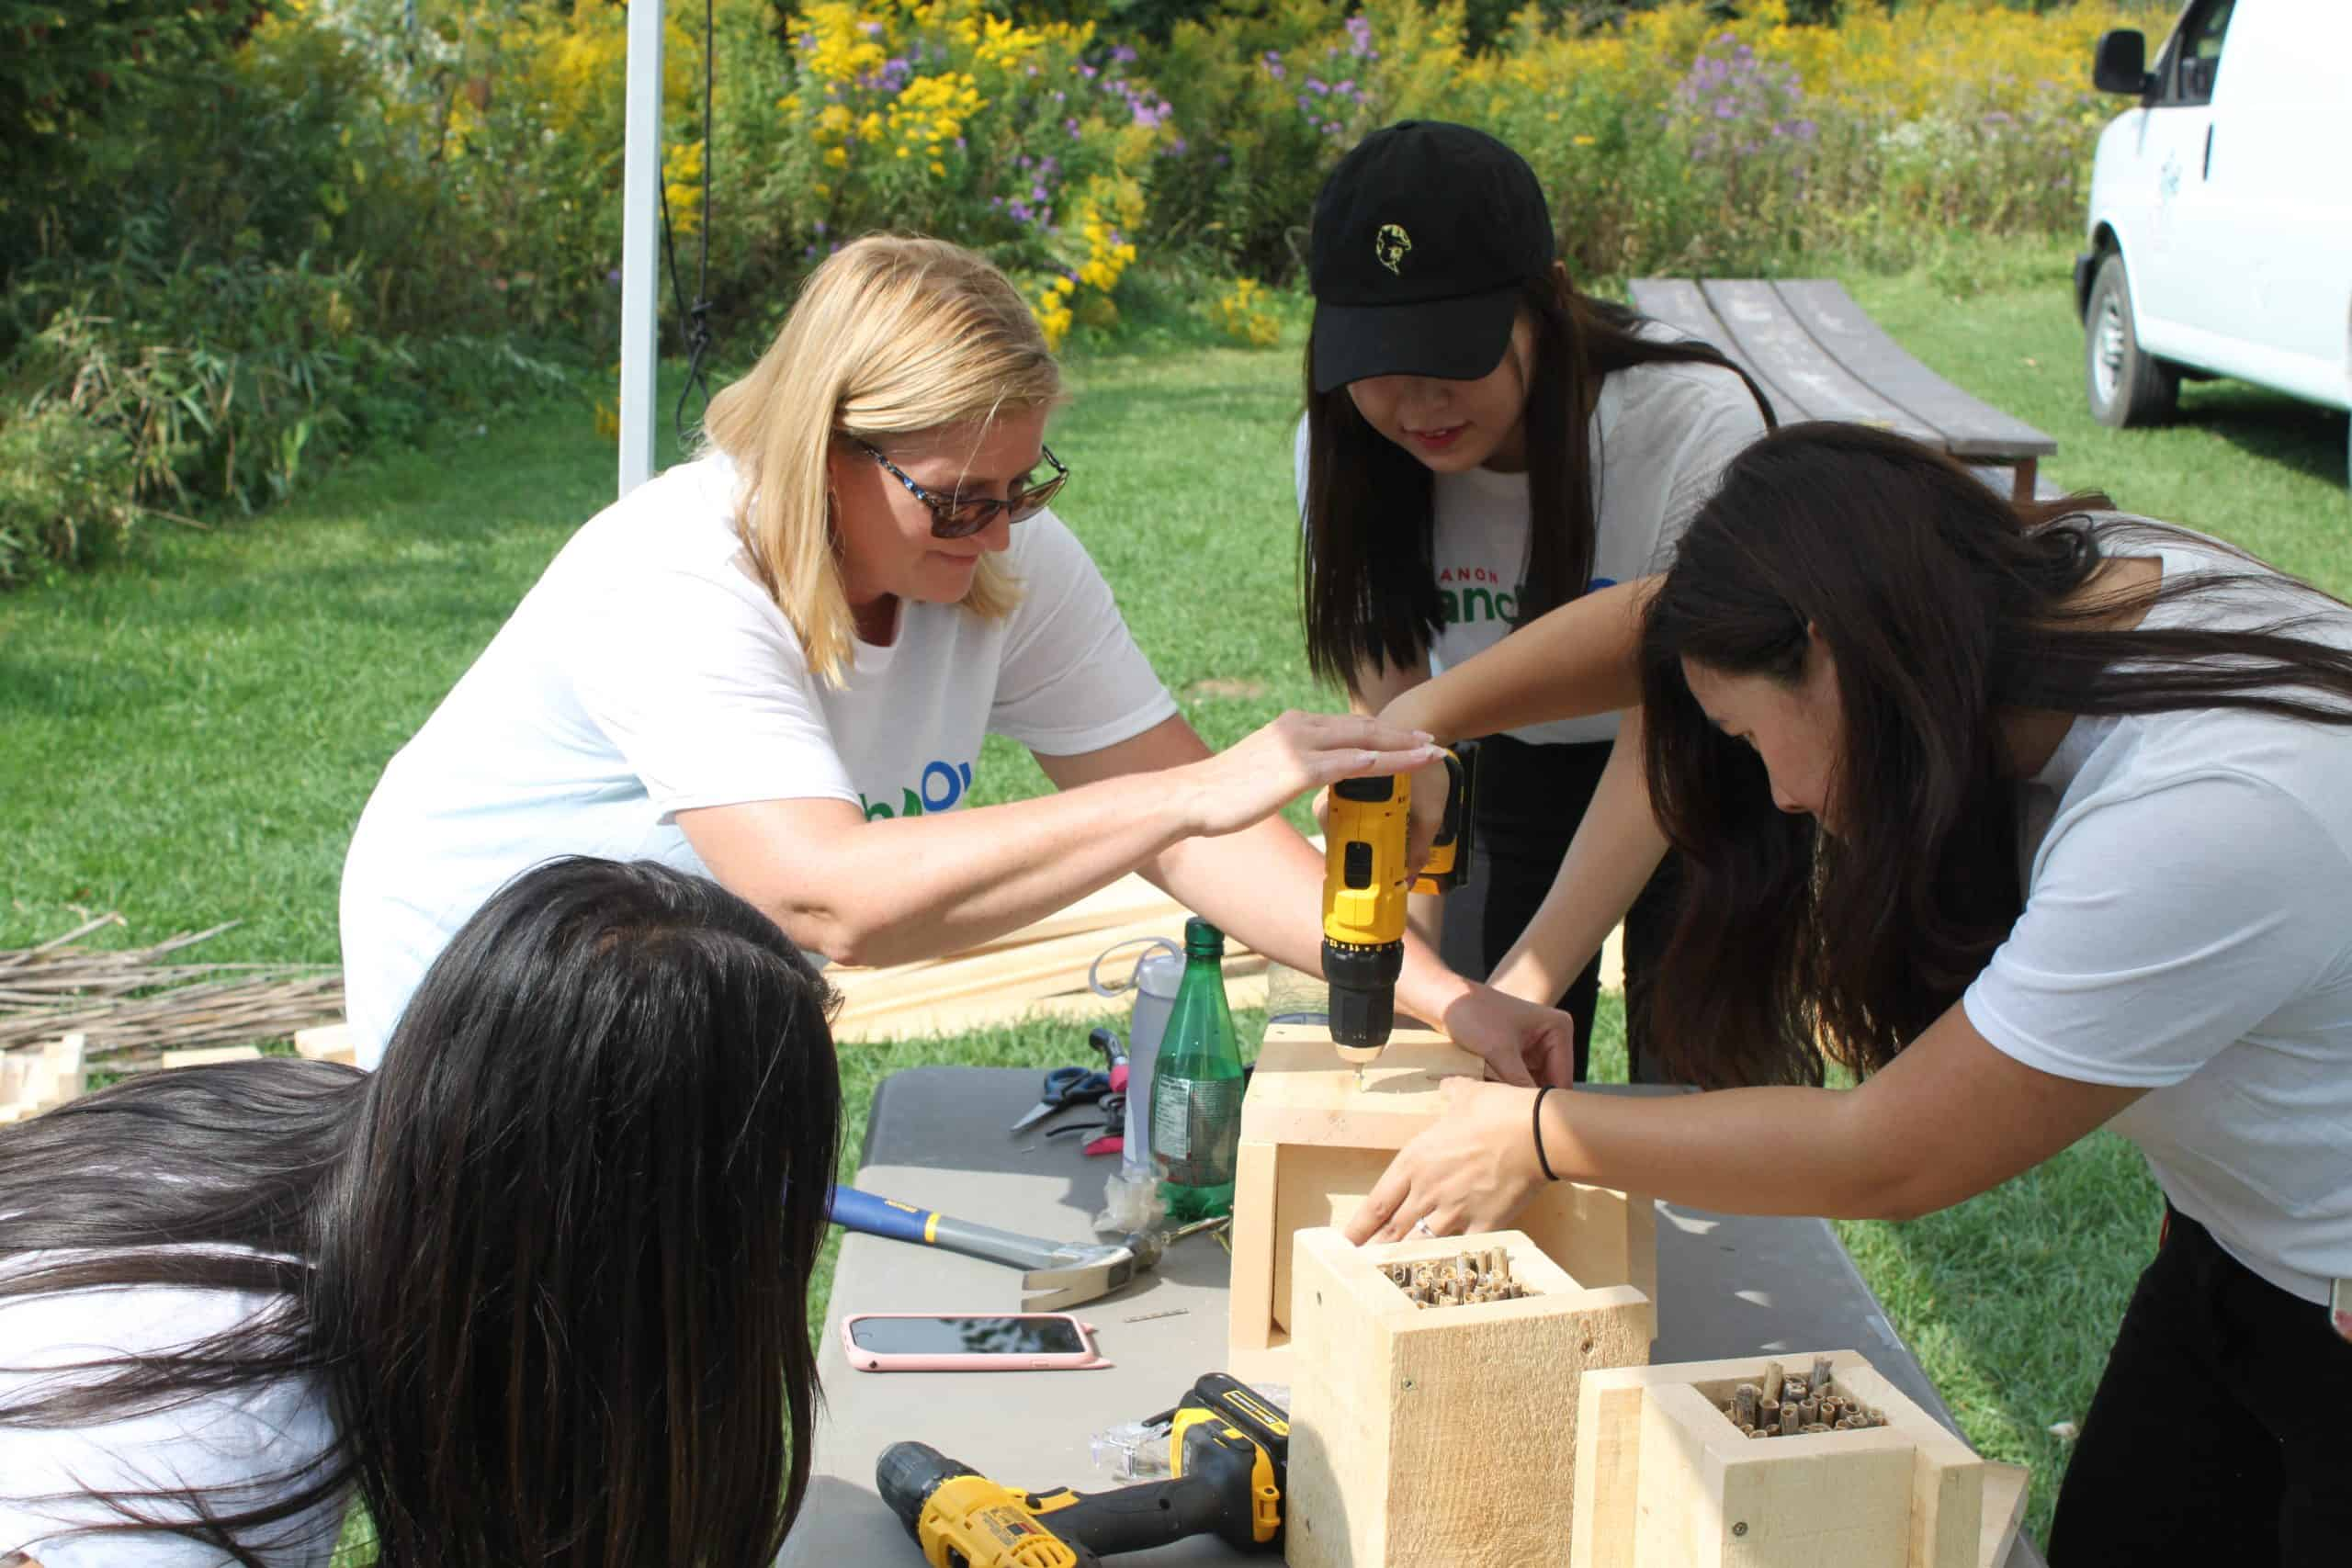 a group of people working at a table outdoors with a drill building habitat boxes